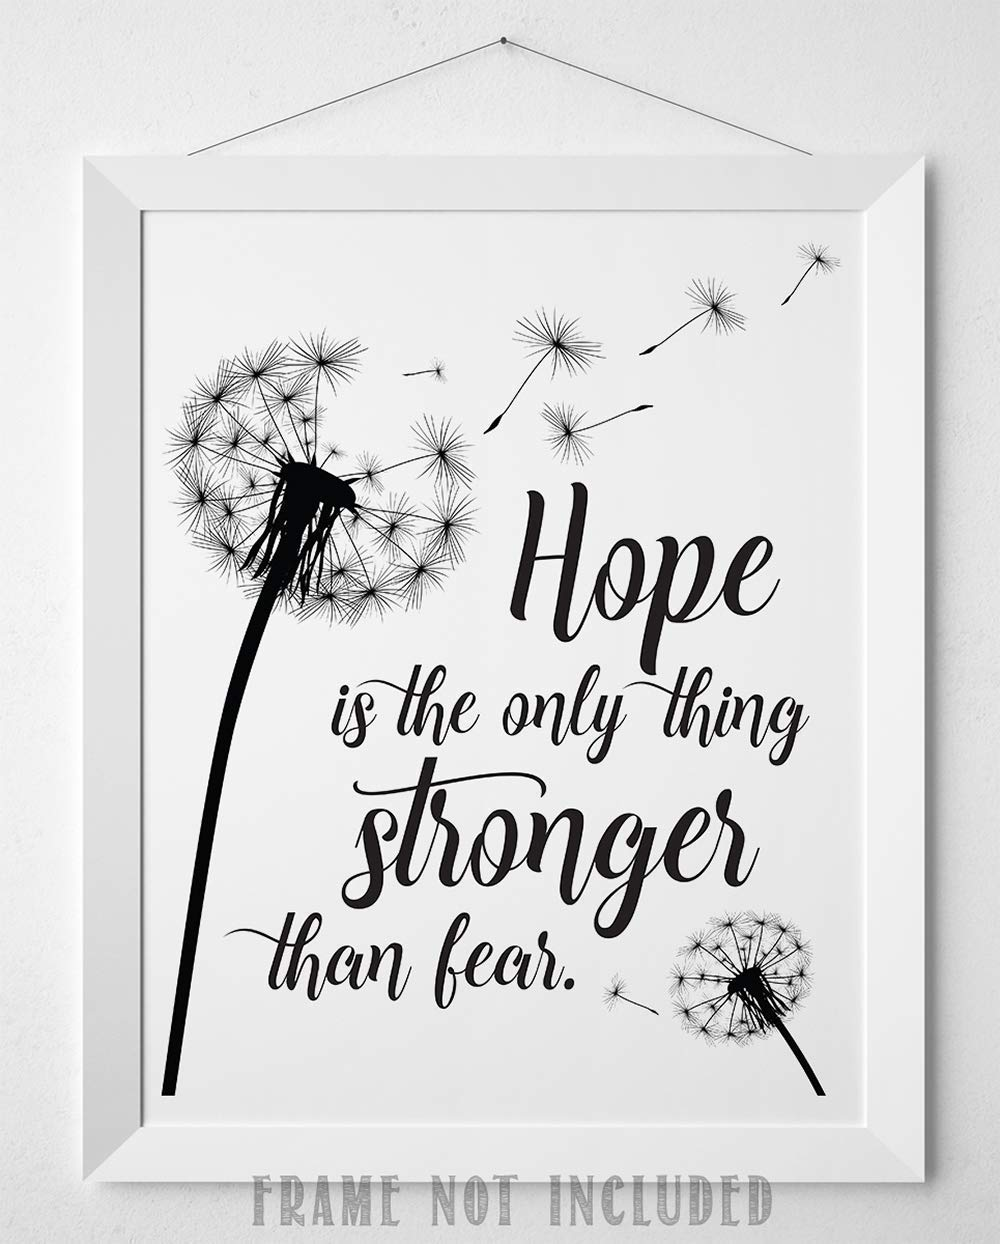 jpg silhouette dxf Image transfer wall art svg cricut svg eps wise quote Svg png Hope is the only thing stronger than fear cutter